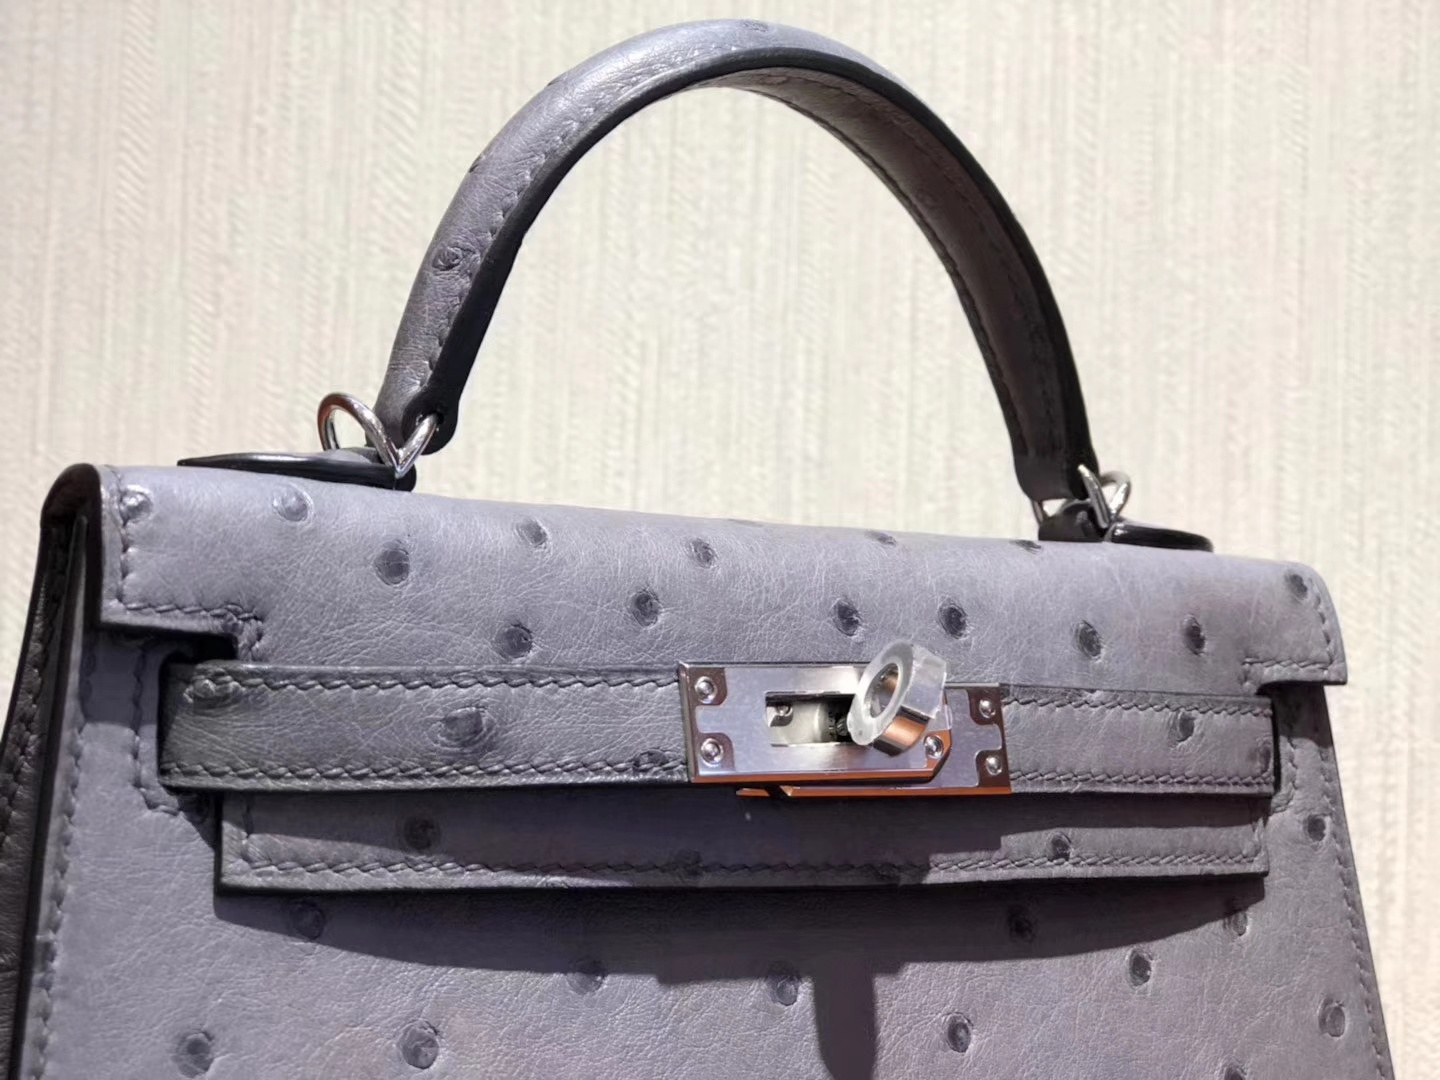 New Hermes Gris Agate KK Ostrich Minikelly-2 Clutch Bag Silver Hardware